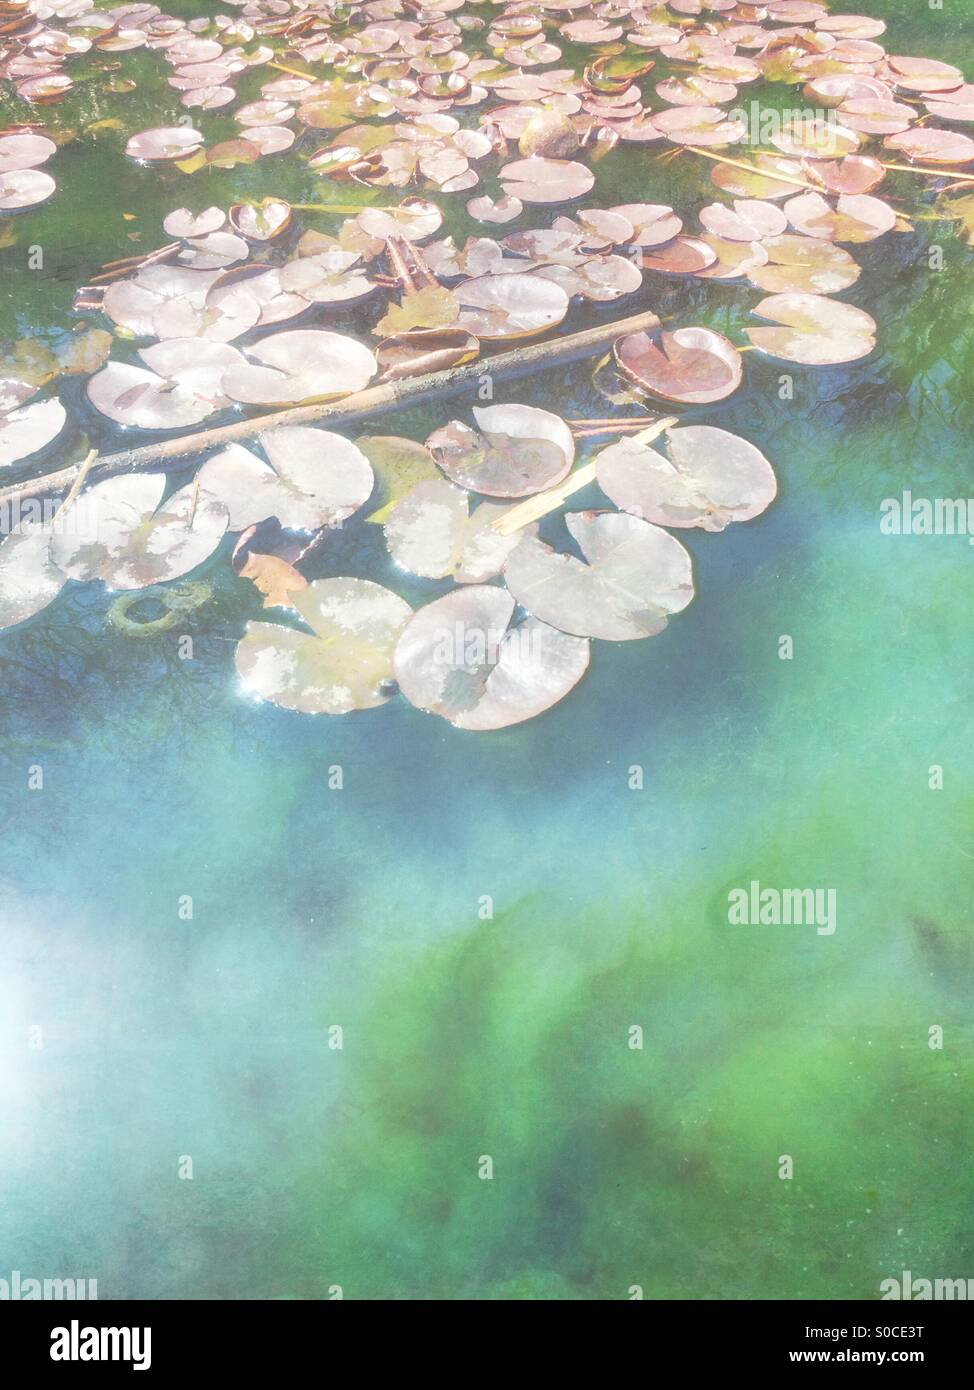 Waterlily pond in Spring, with painterly texture overlay. - Stock Image